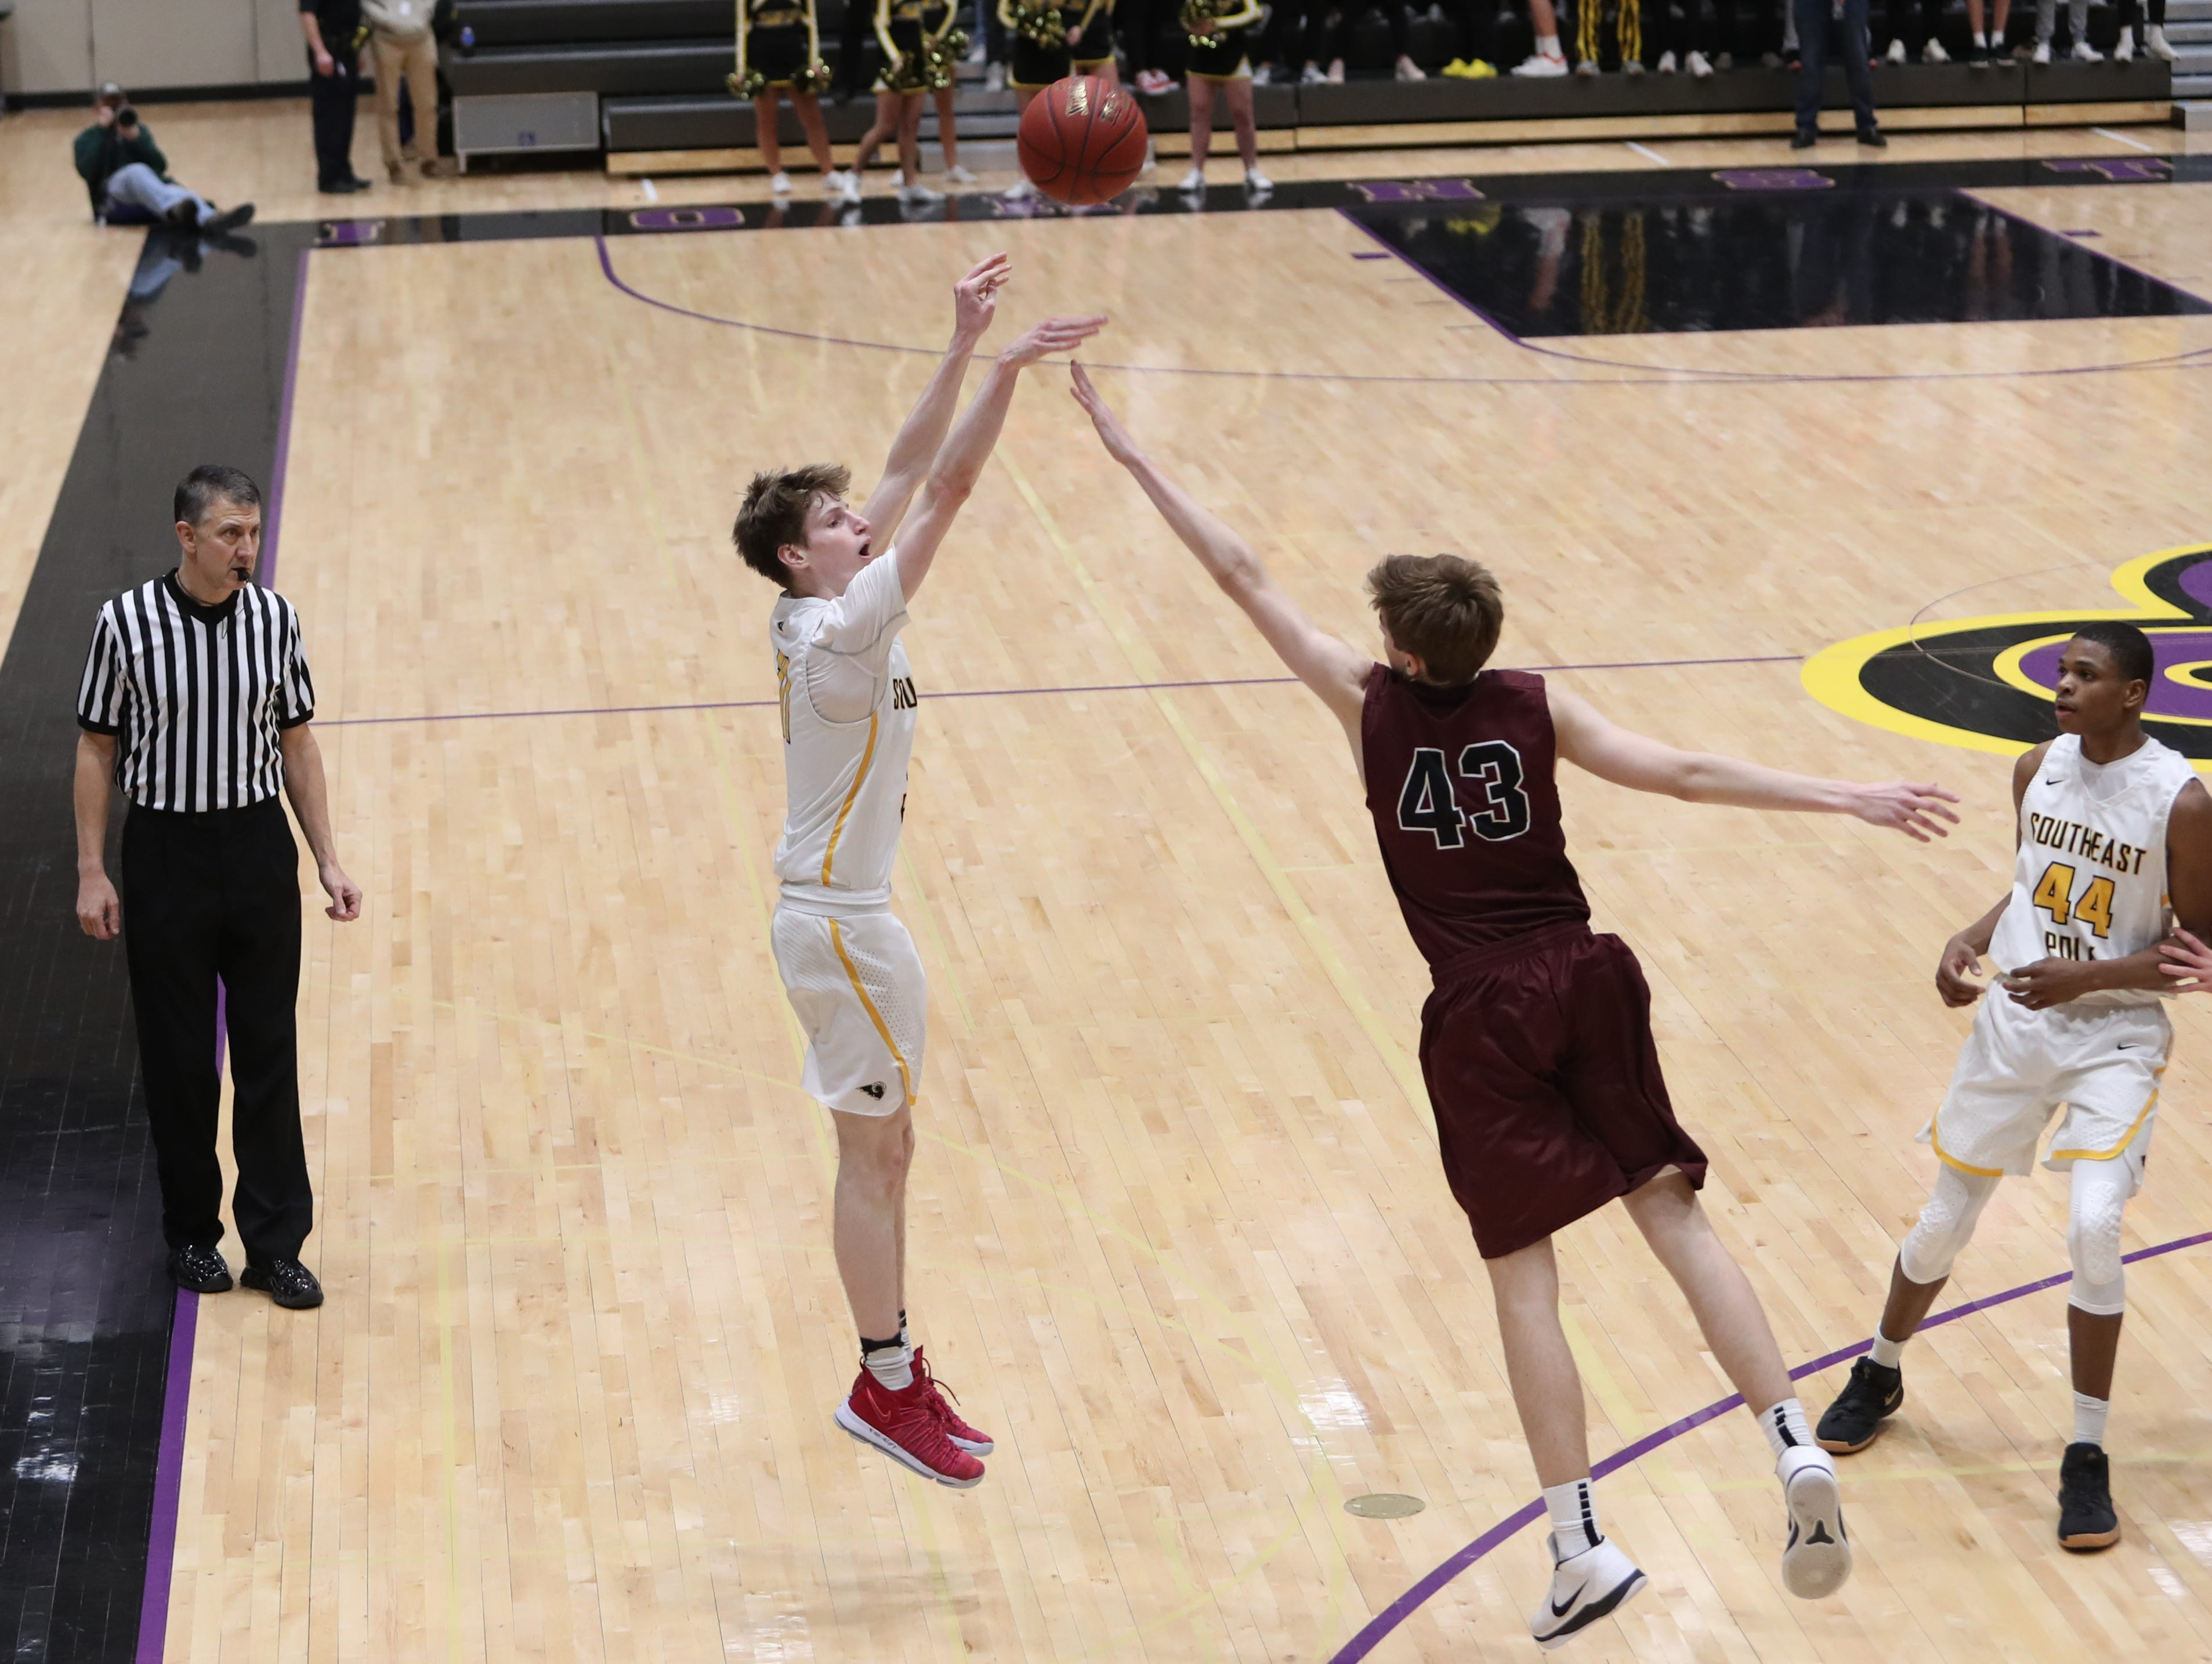 Southeast Polk's Sam Glenn (11) shoots over Dowling Catholic's Drew Daniel (43) during their game at Johnston High School in Johnston, Iowa, on Tuesday, Feb. 26, 2019. Dowling won the game 44-40 to advance to state.